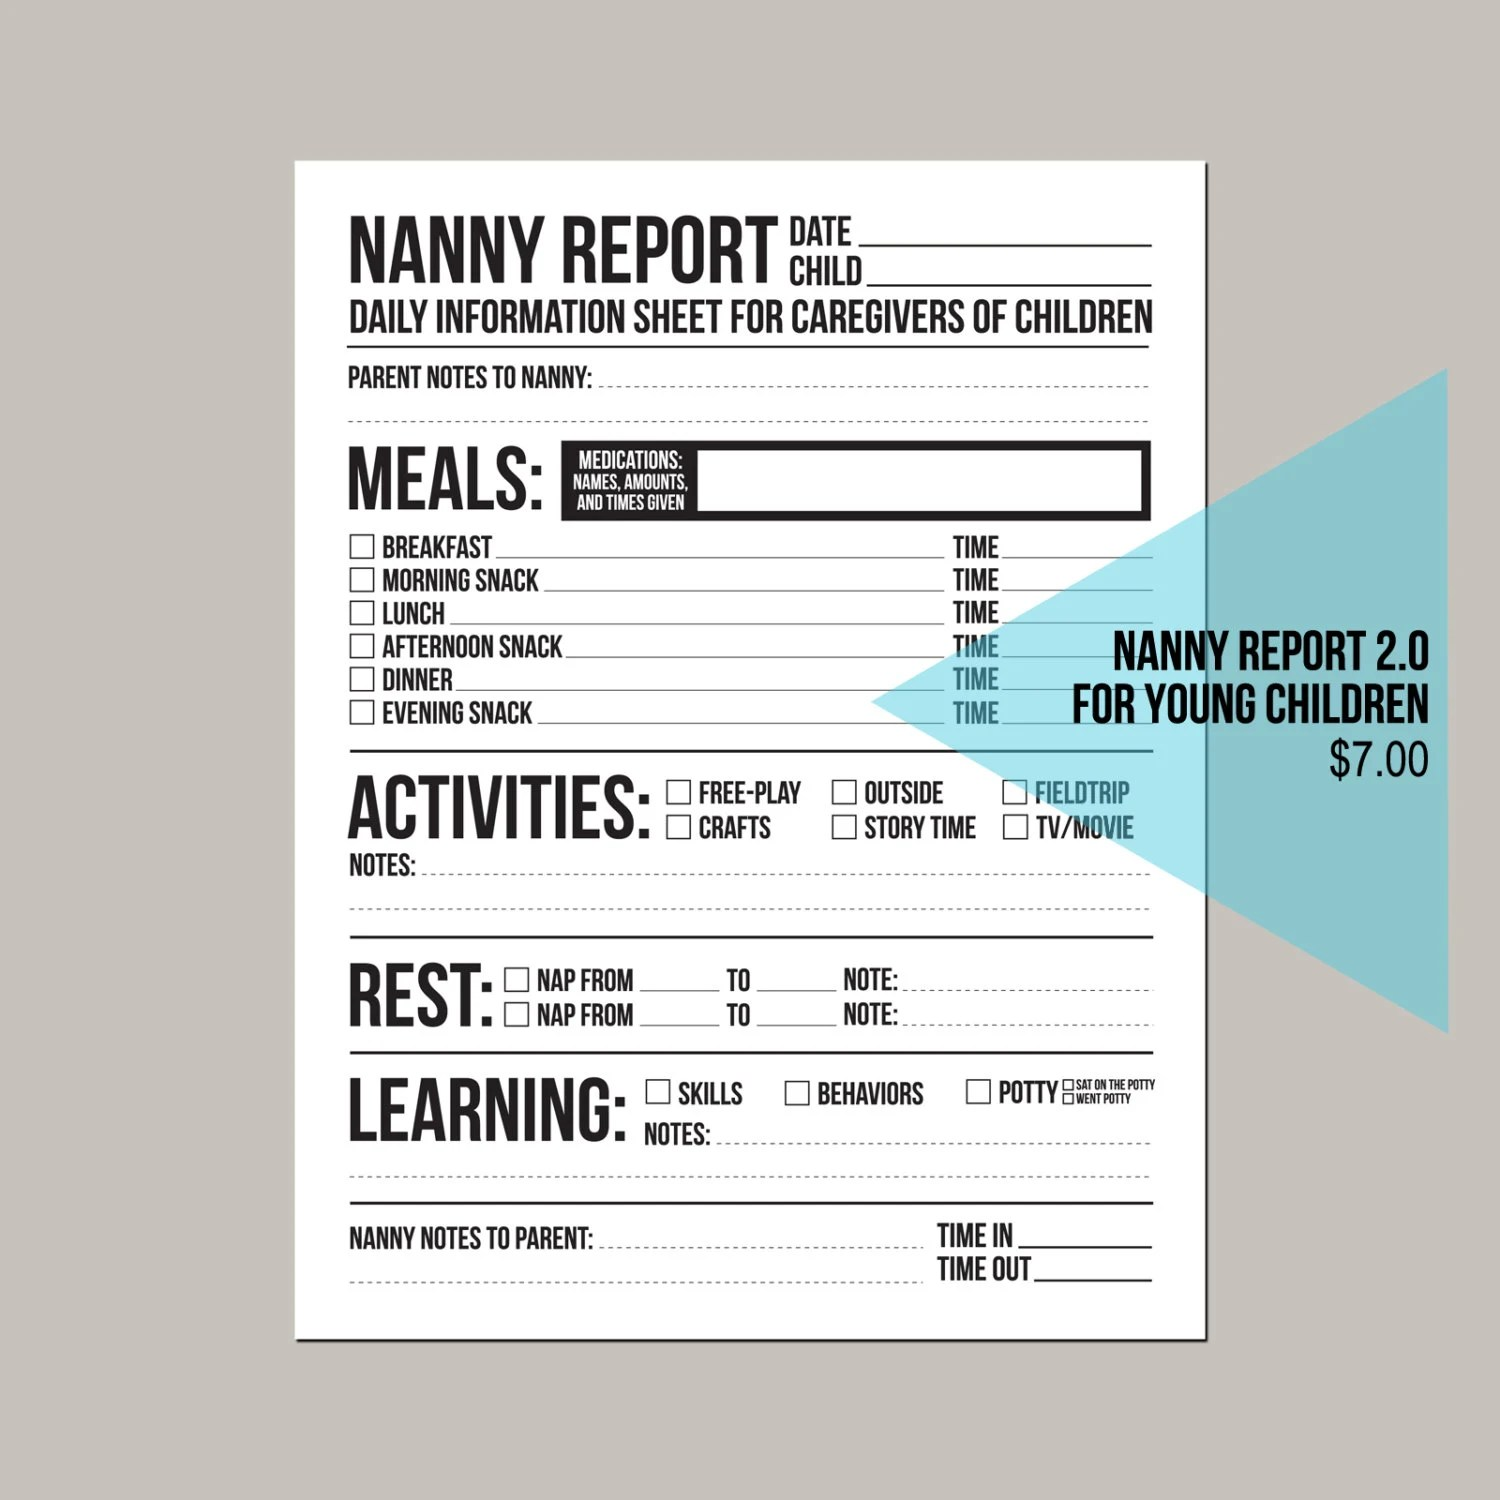 Nanny Report 2 0 Updated Daily Information Sheet For